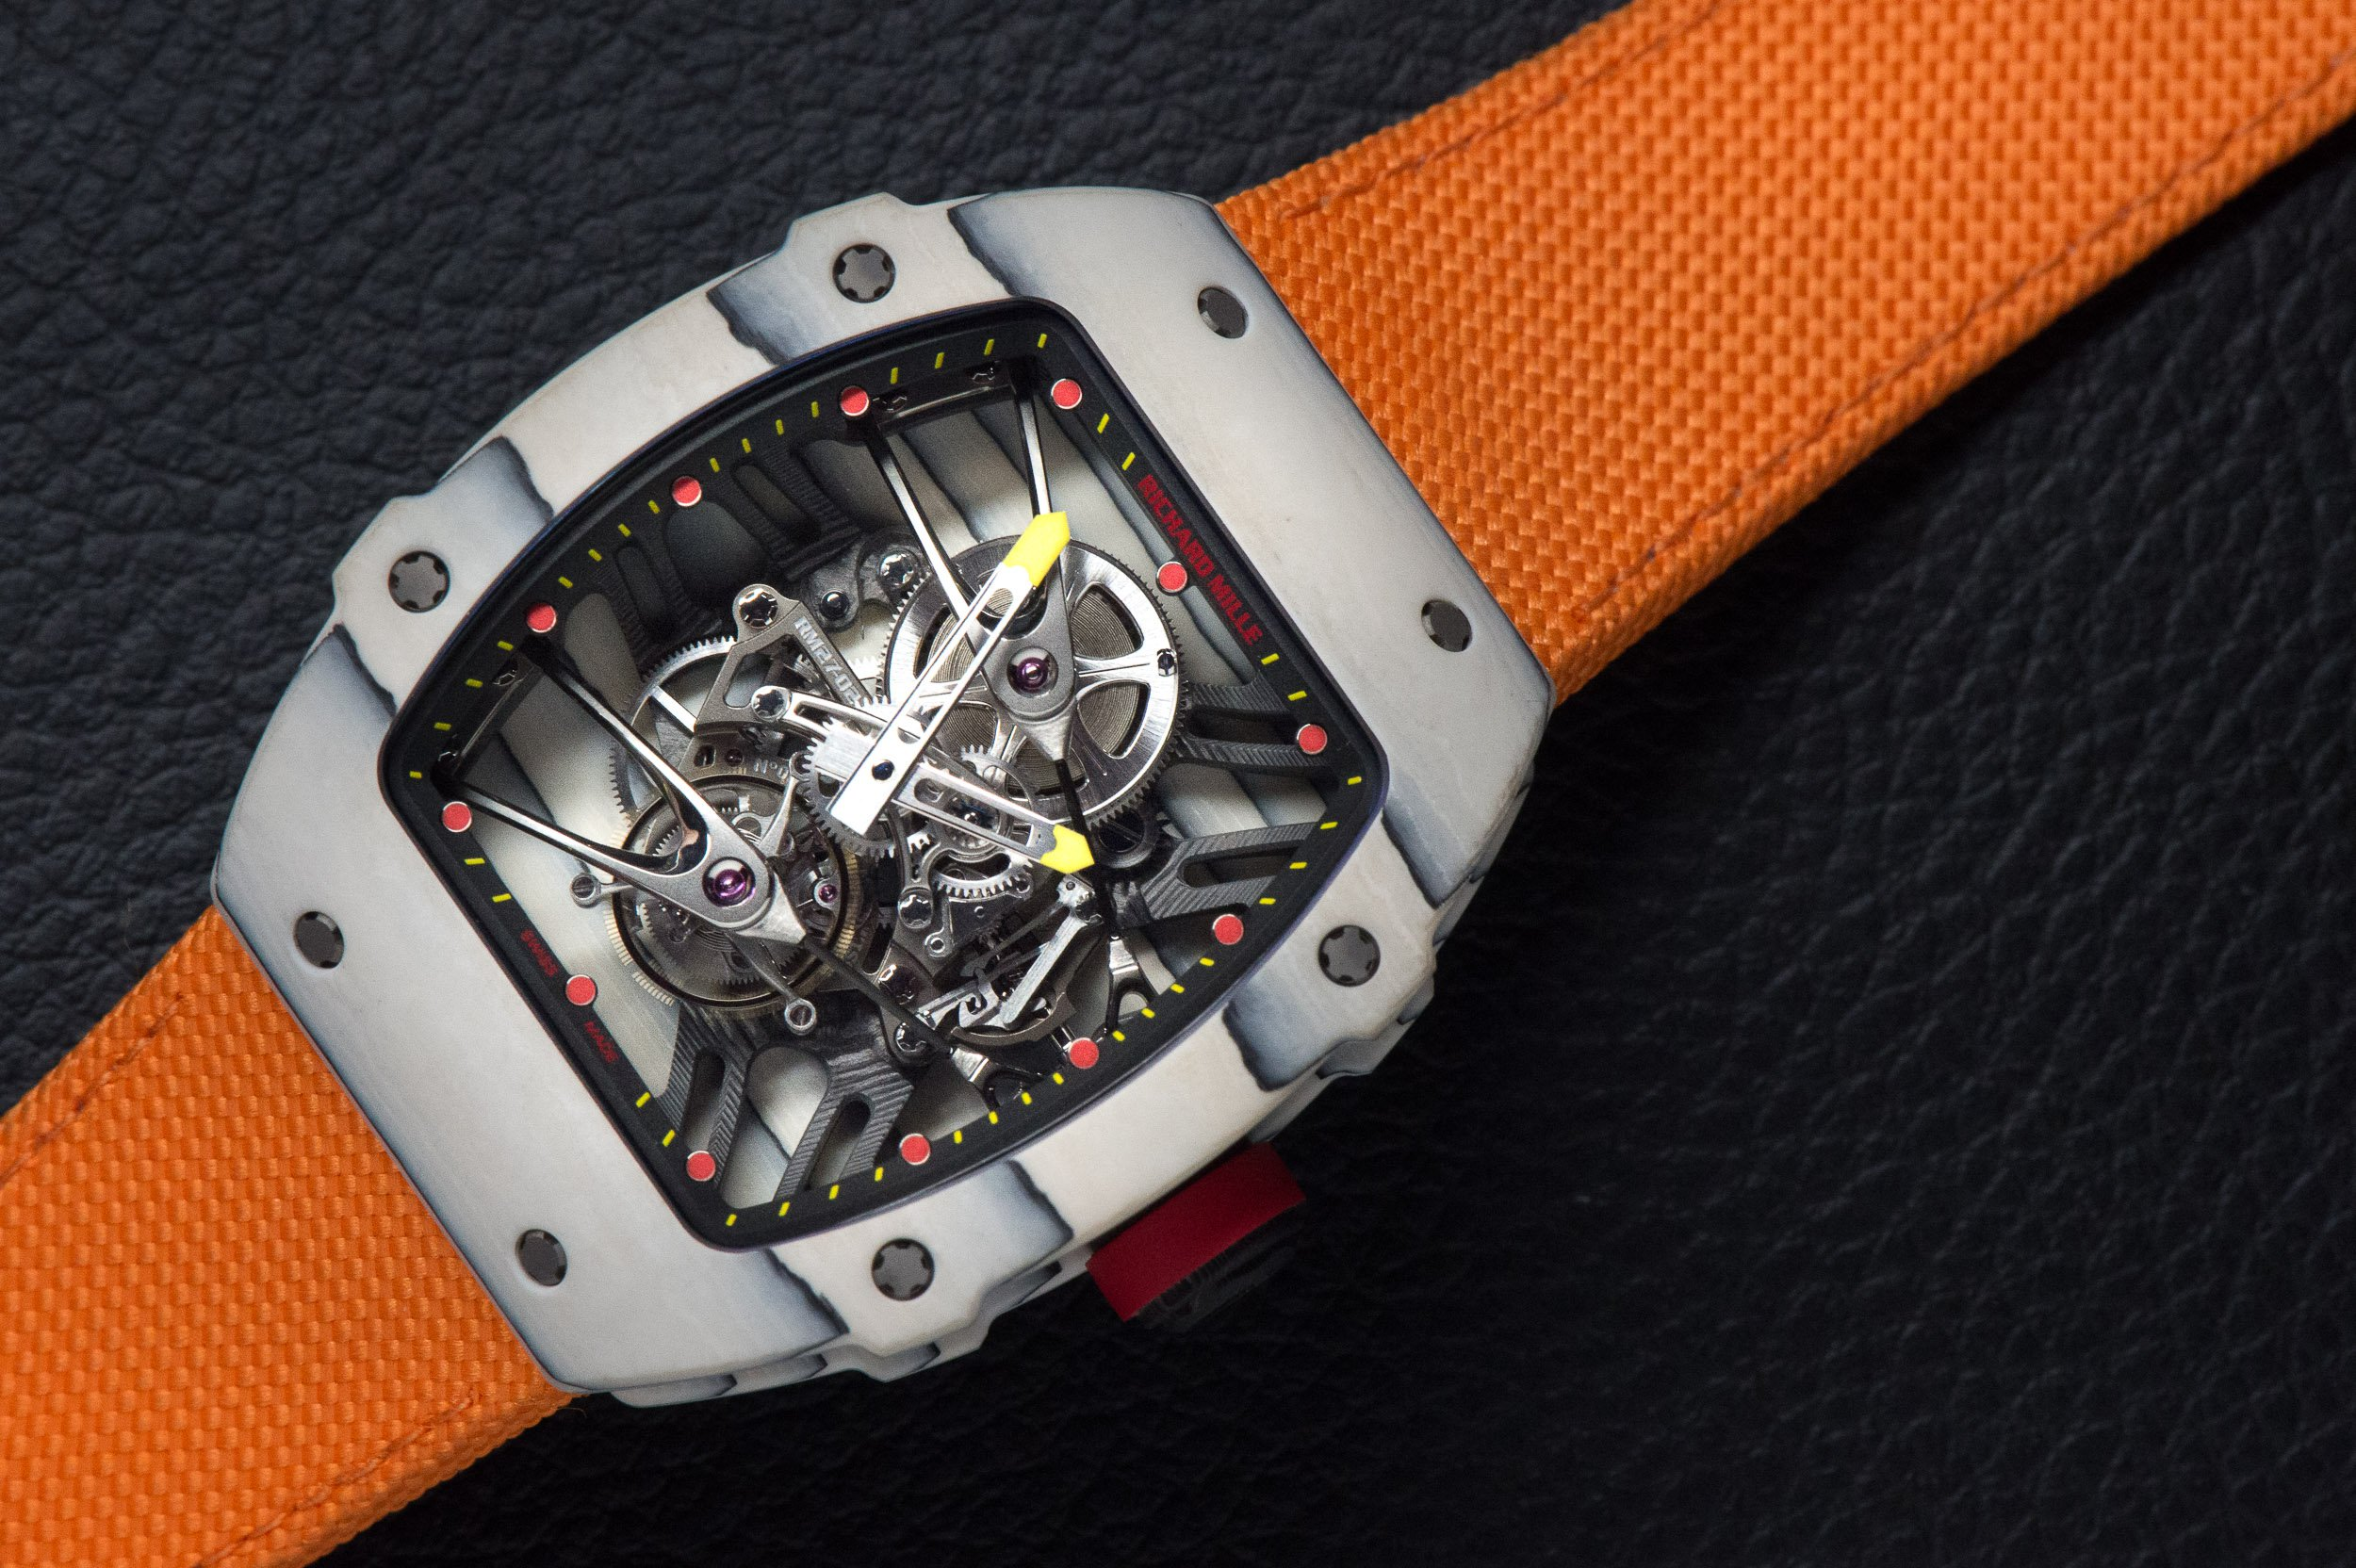 Replica Watches Richard Mille Rm 27 02 Rafael Nadal Replica Jacob Co Watches